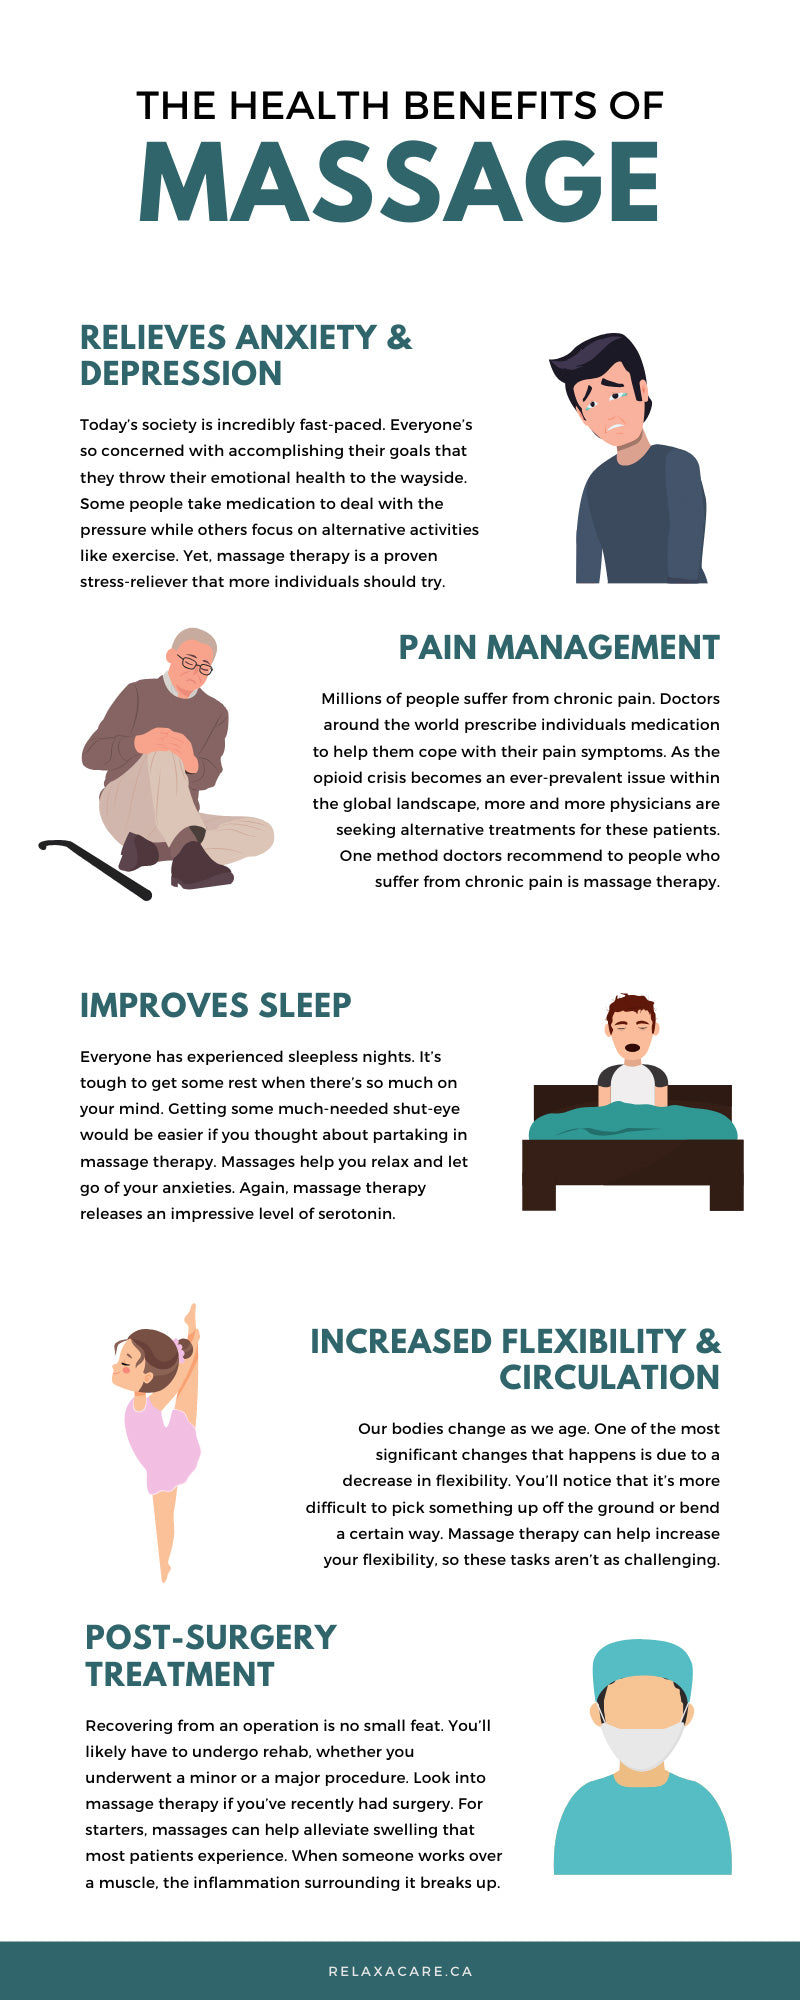 The Health Benefits of Massage